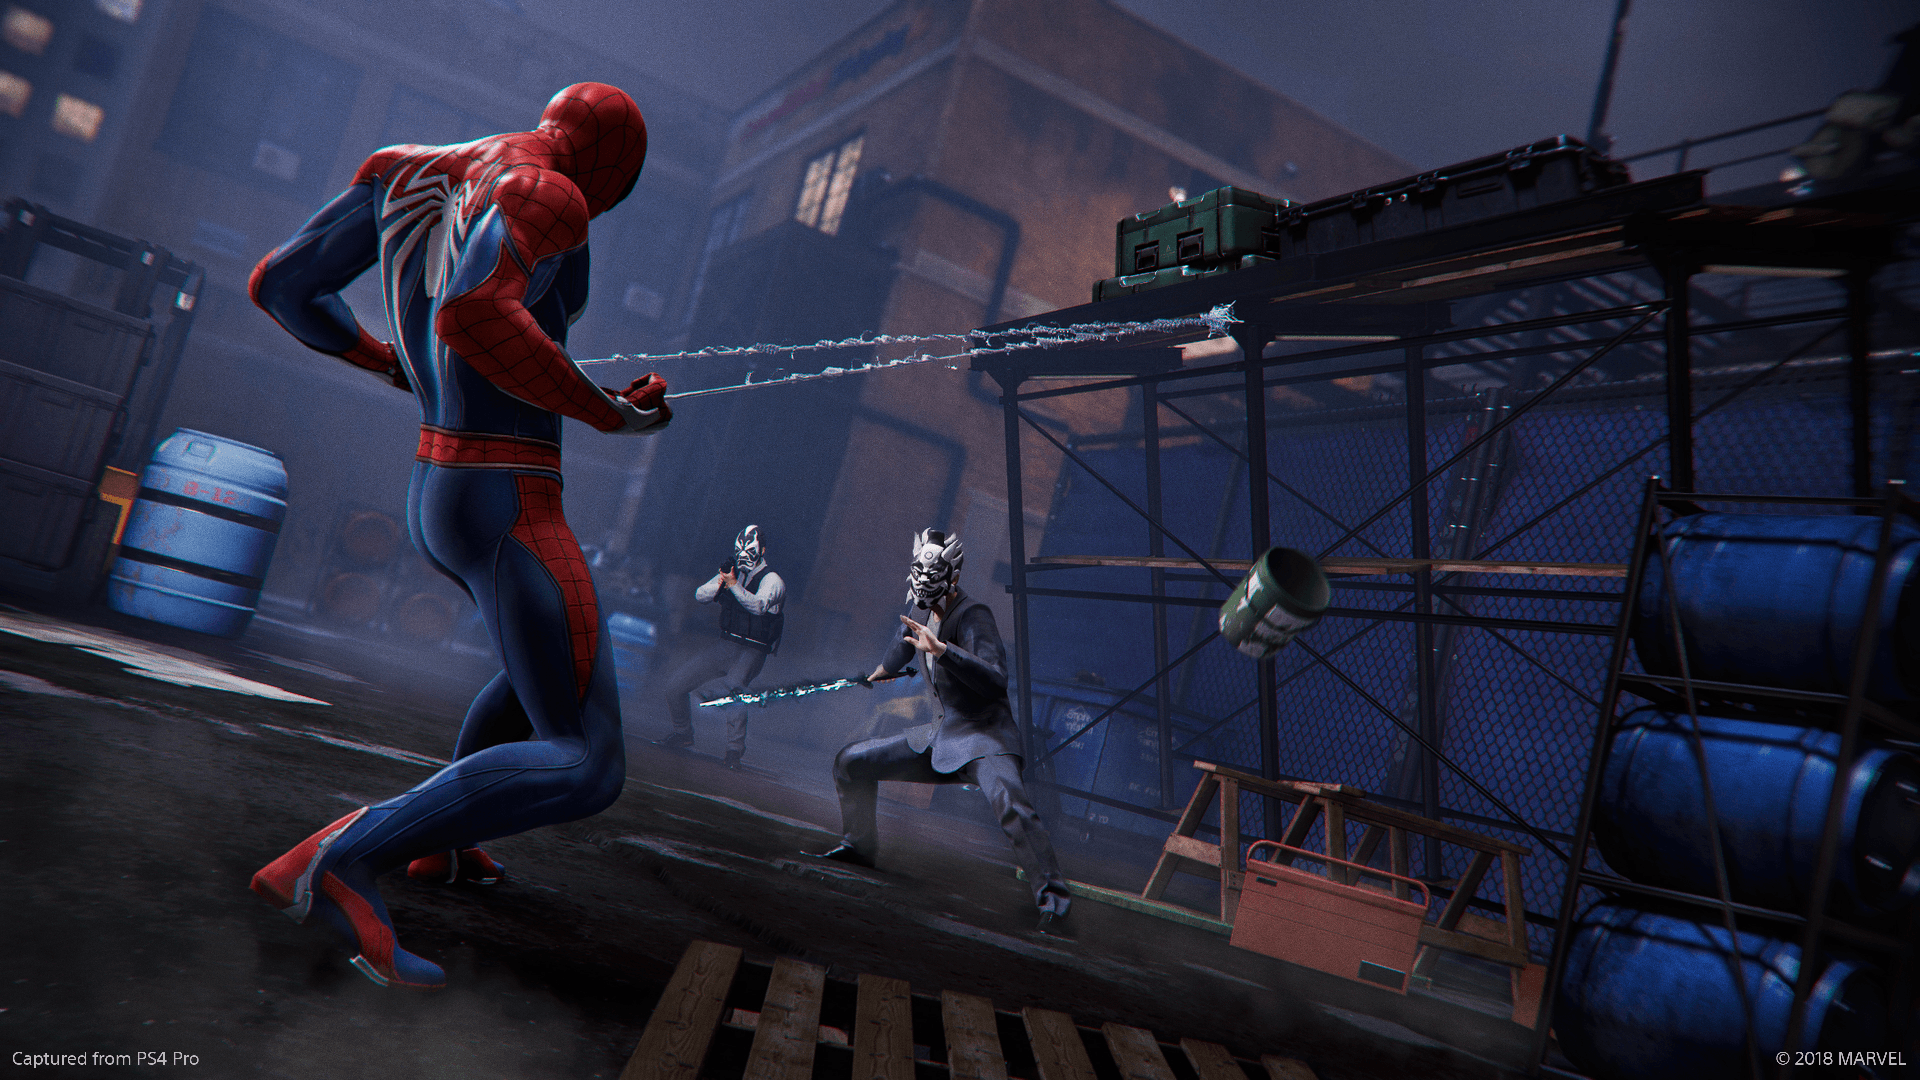 Action, adventure, Comic Book, Insomniac Games, Marvel's Spider-Man, Marvel's Spider-Man Review, PS4, PS4 Review, Rating 9/10, Sony, Sony Interactive Entertainment Europe, Spider-Man